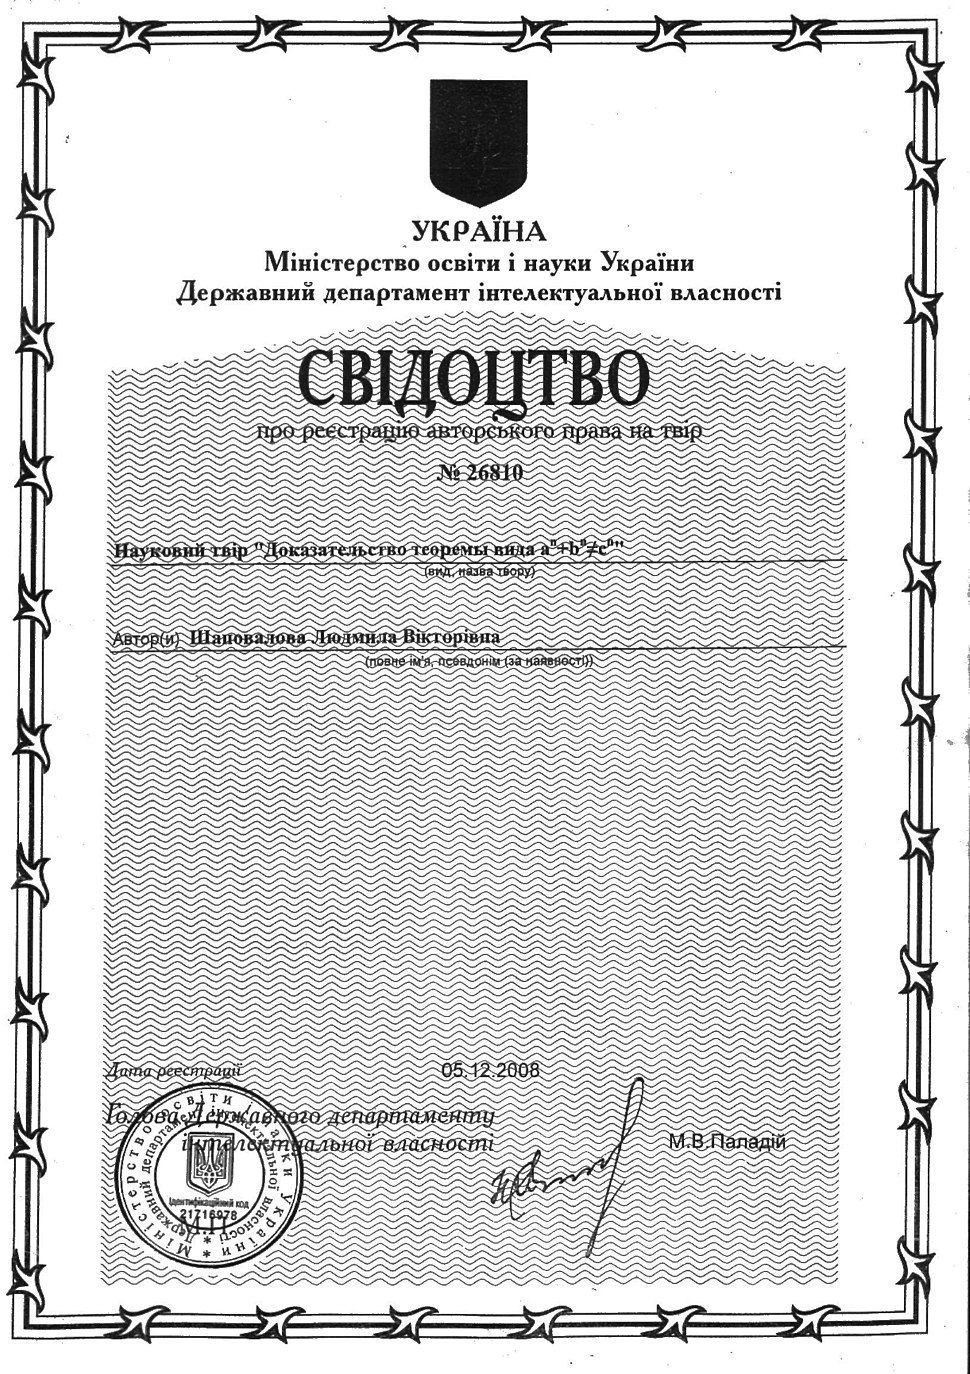 Fermat Last Theorem %22proof%22 registered by Ukraine officials.jpg